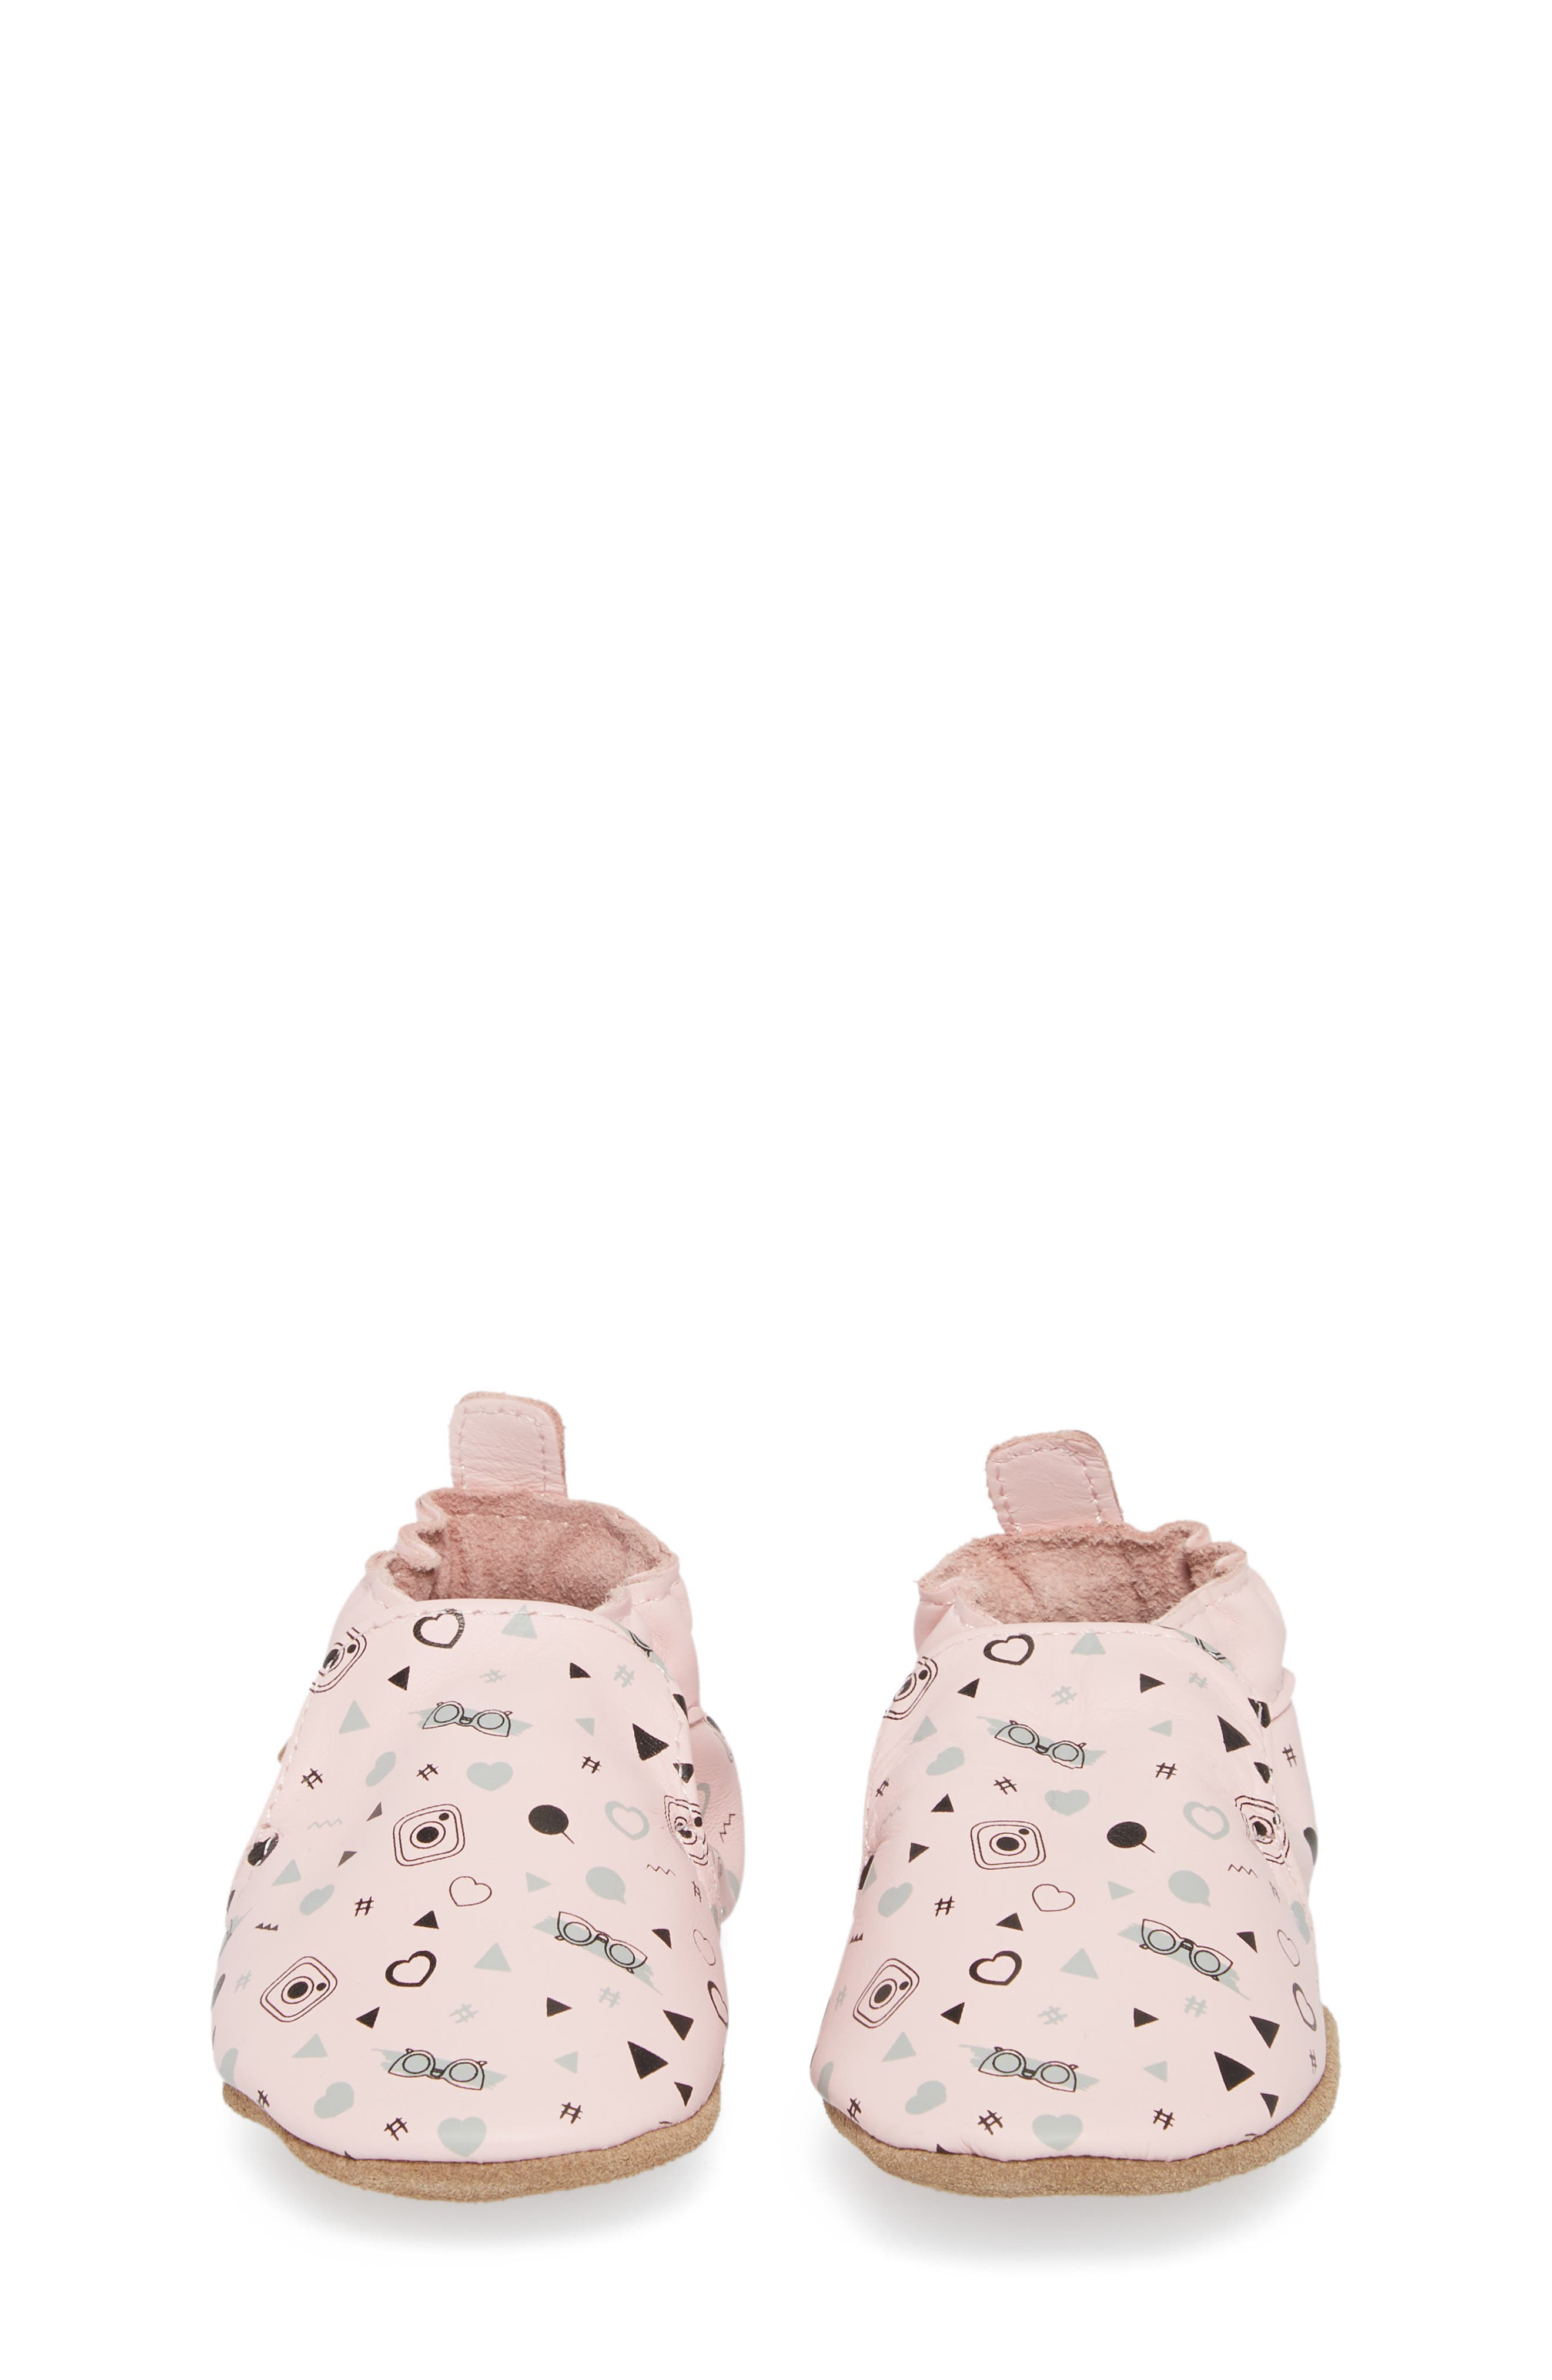 Girlygirl Moccasin Crib Shoe,                             Alternate thumbnail 5, color,                             Soft Pink